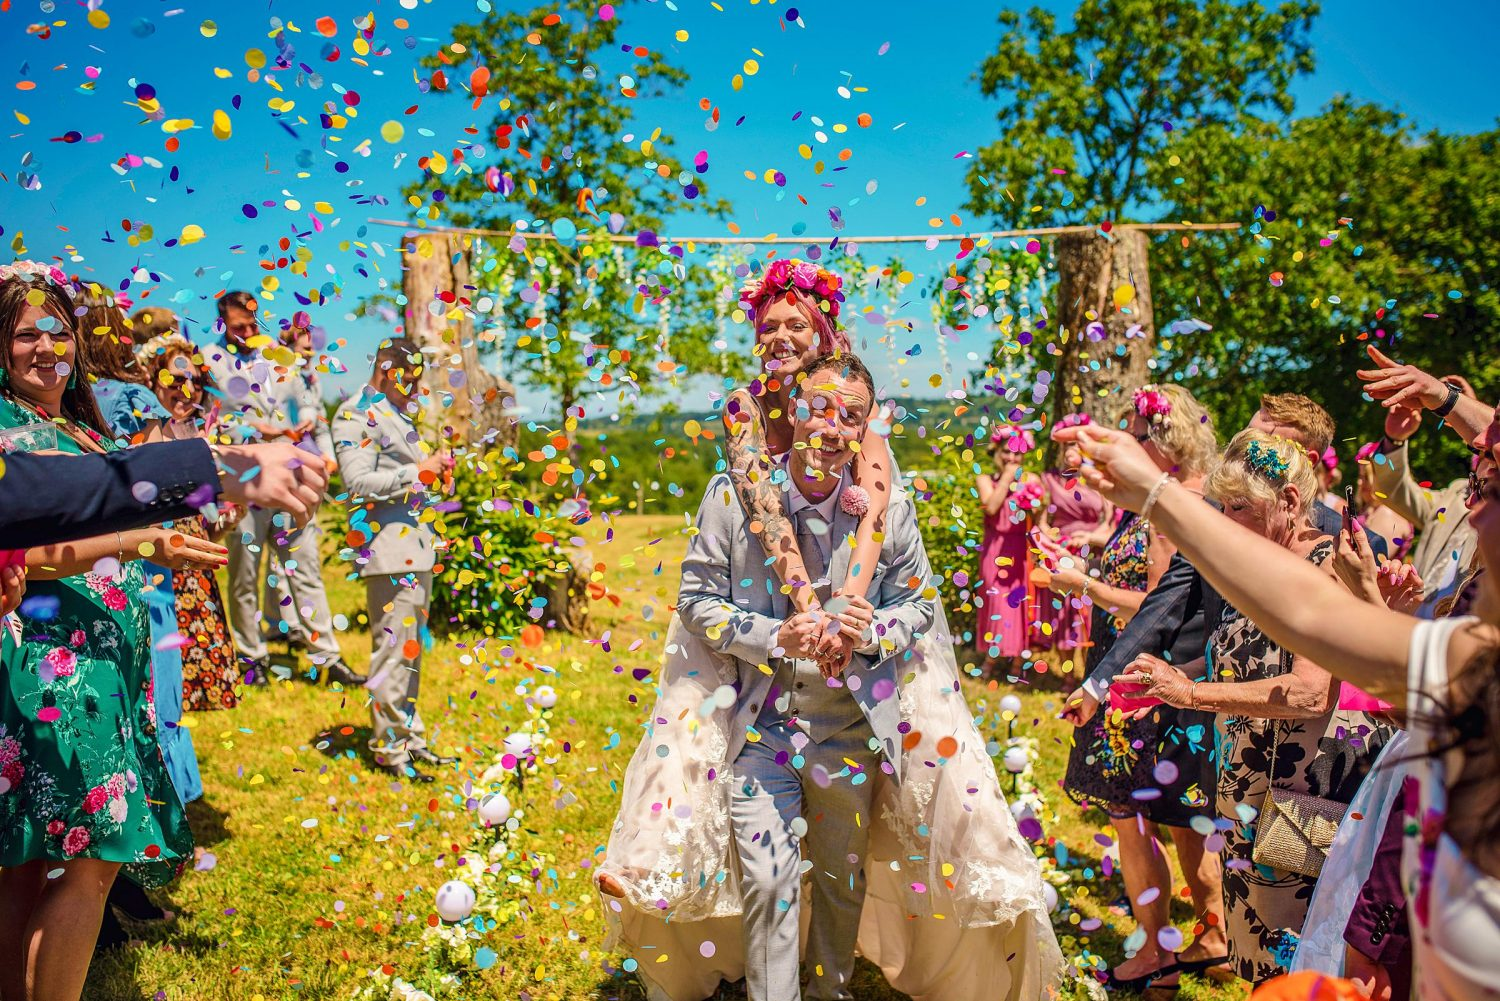 Fun London Wedding Photographer - Colourful Wedding Photography - Photography by Vicki